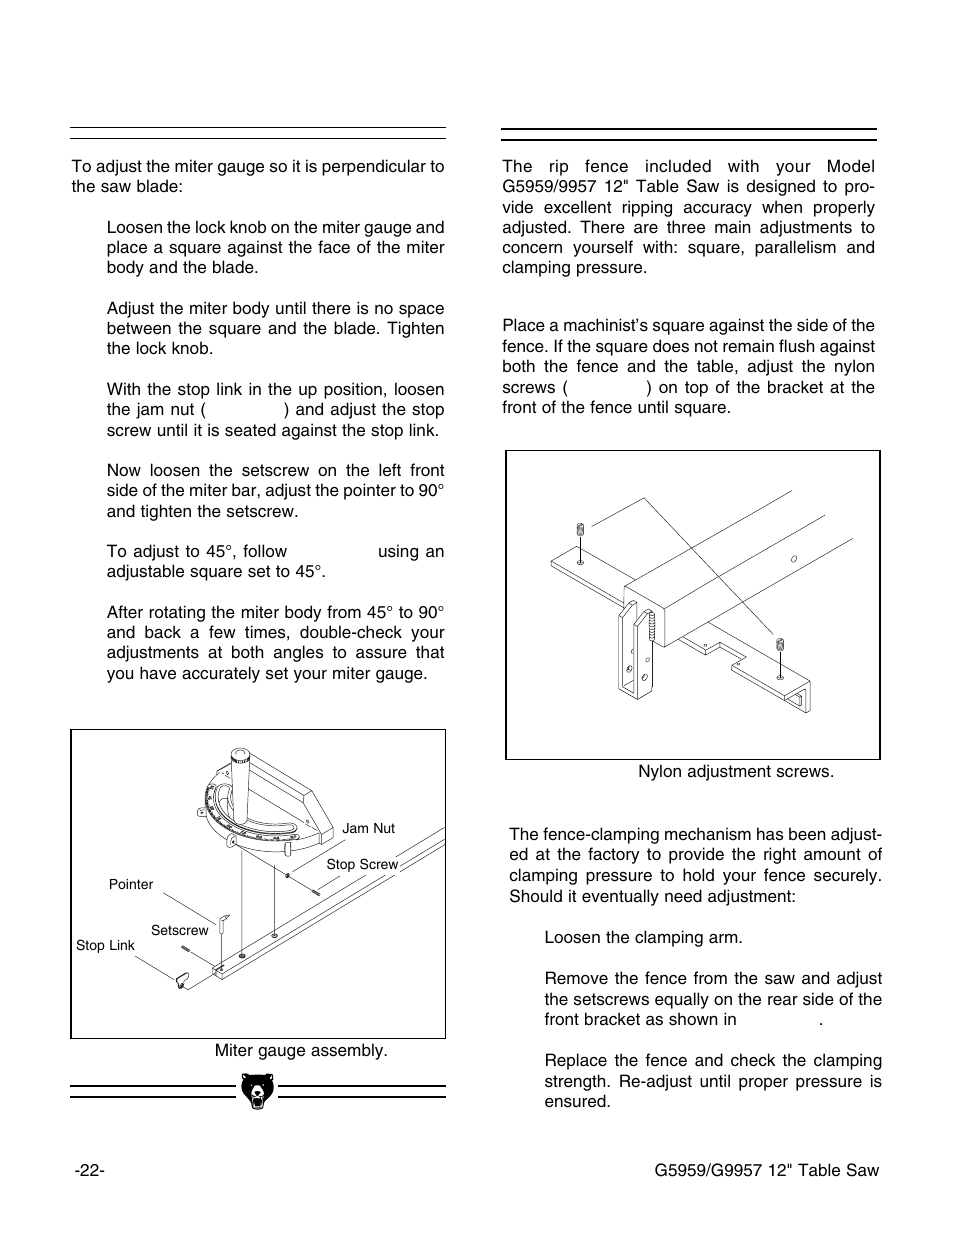 Rip Fence Miter Gauge Grizzly G5959 User Manual Page 24 52 Diagram 1 Black Is In Check 2 Double